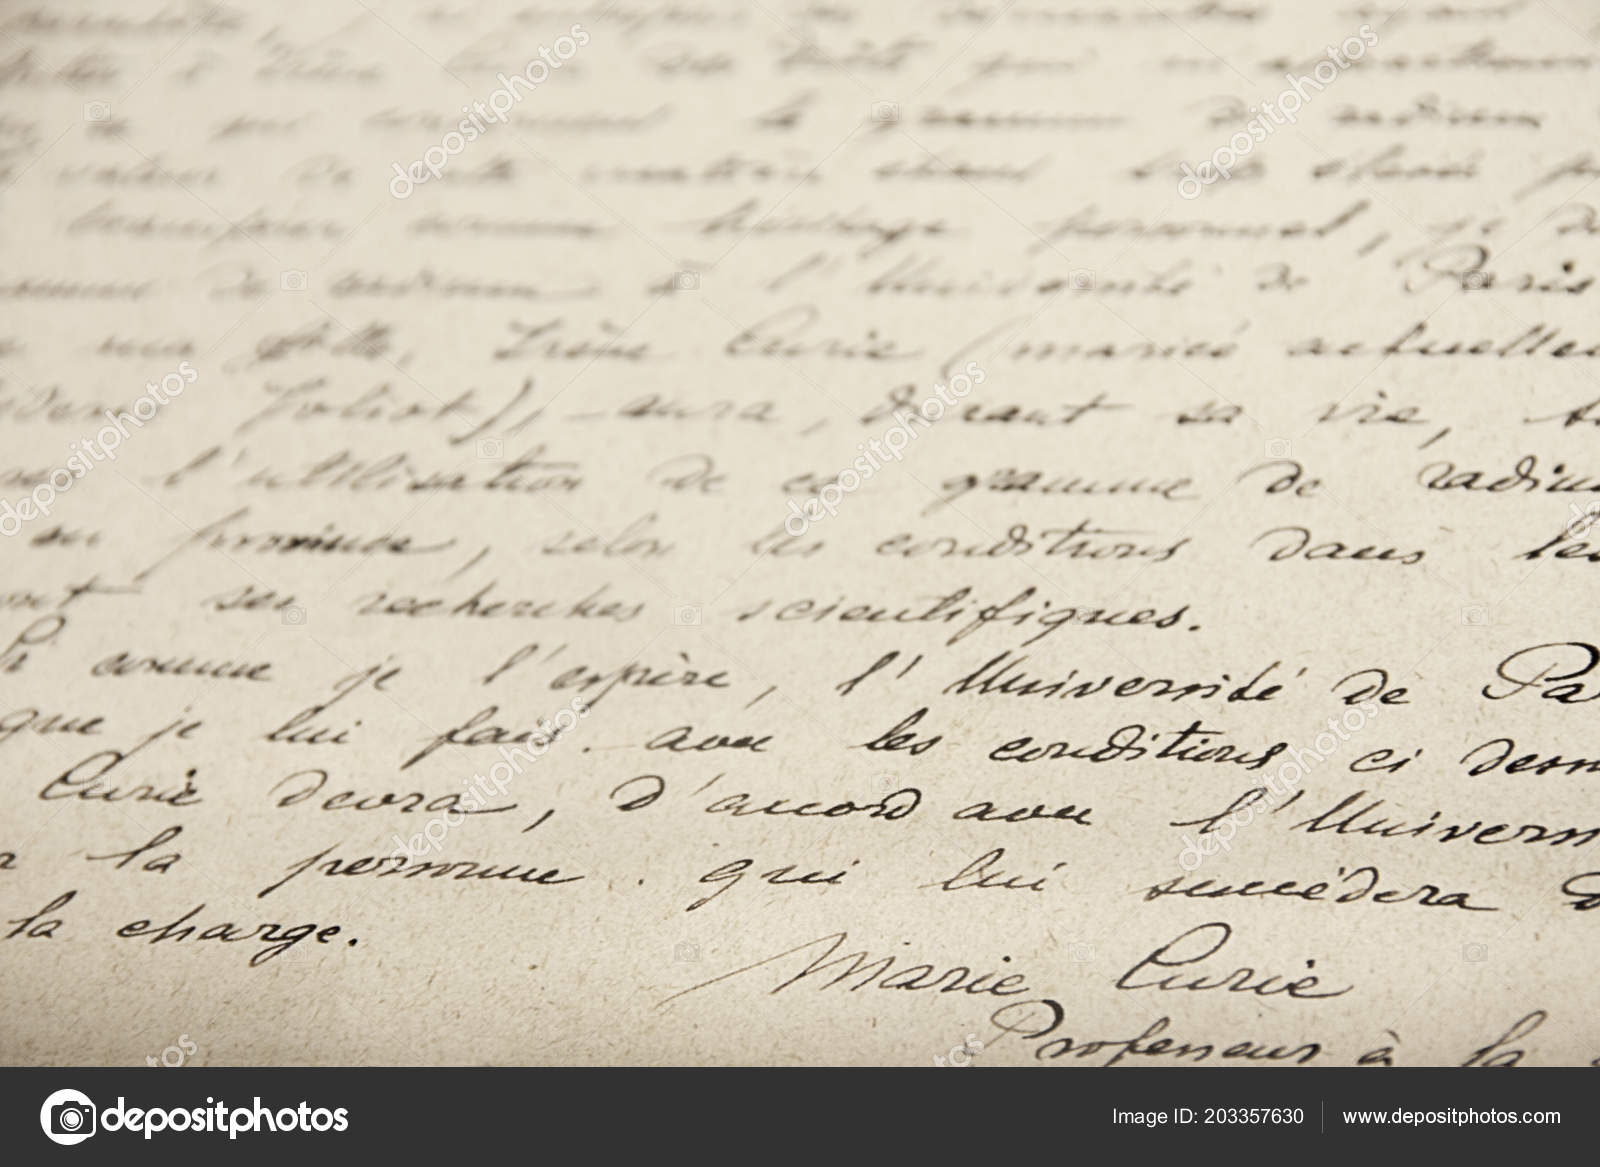 Marie Curie Handwrited Document Stock Photo Image By C Procy 203357630